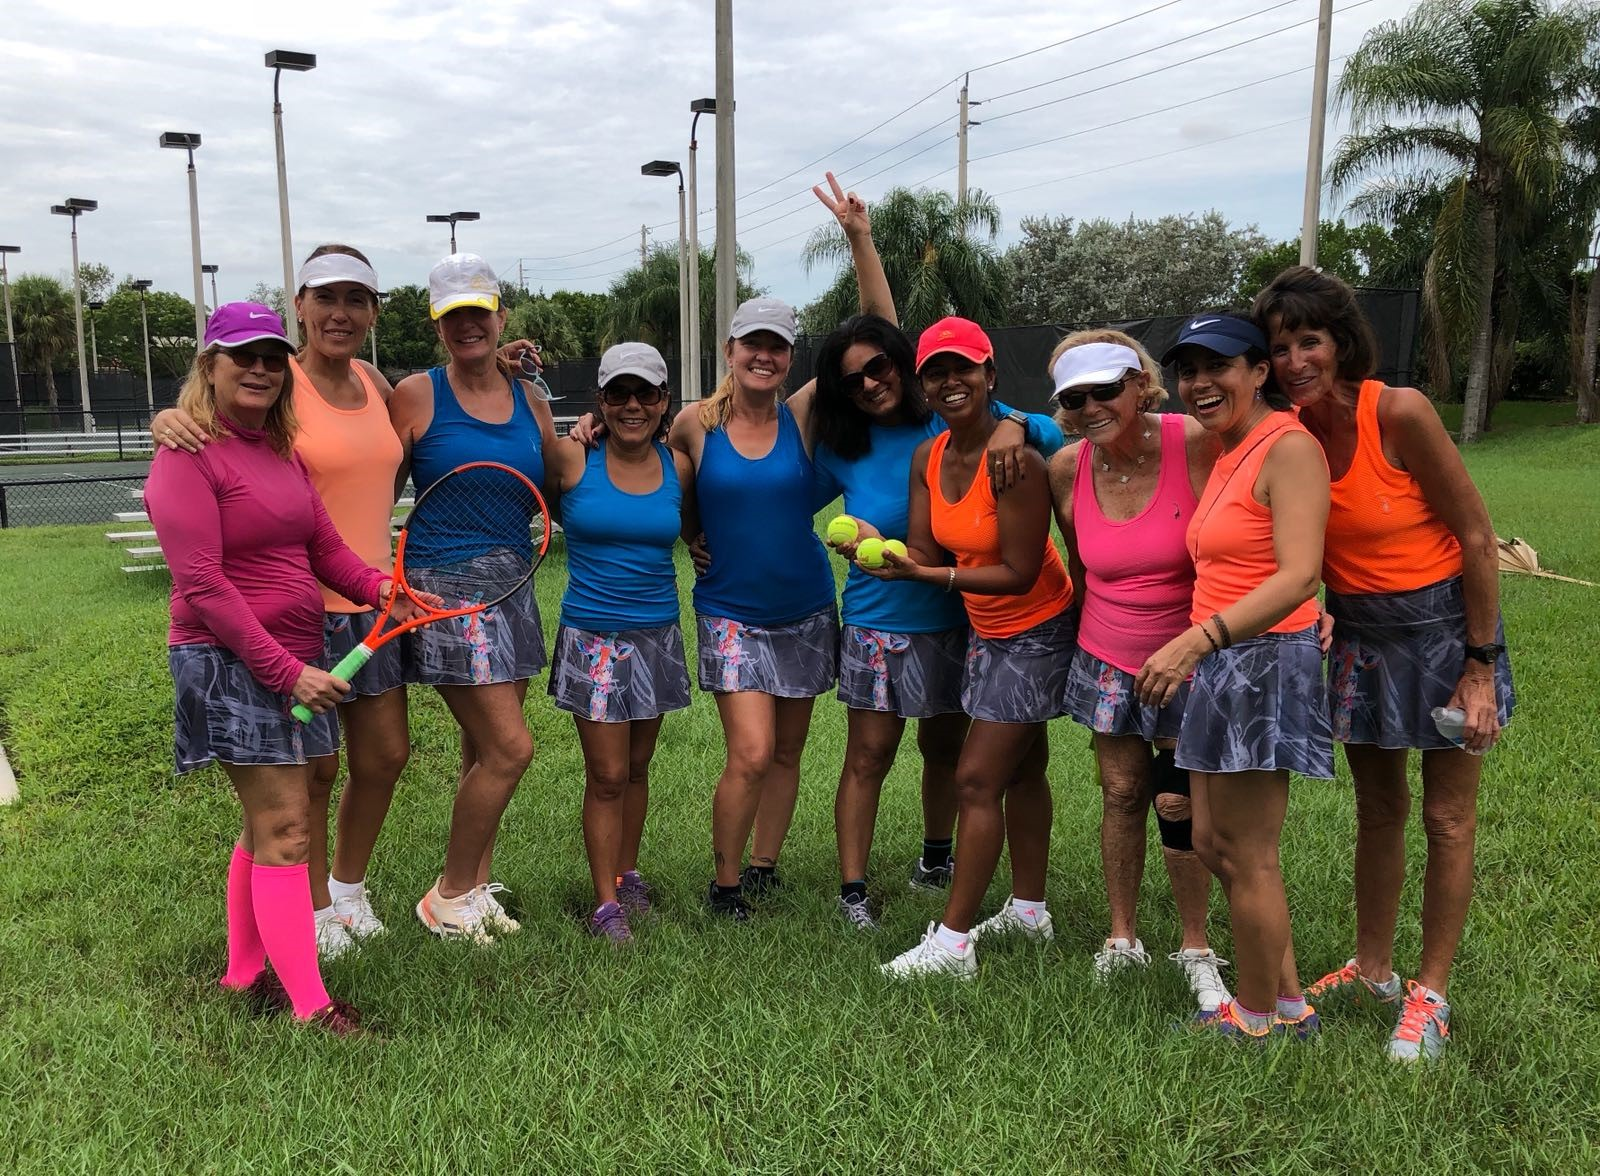 10 women from the Weston Women's Tennis League posing in front of courts